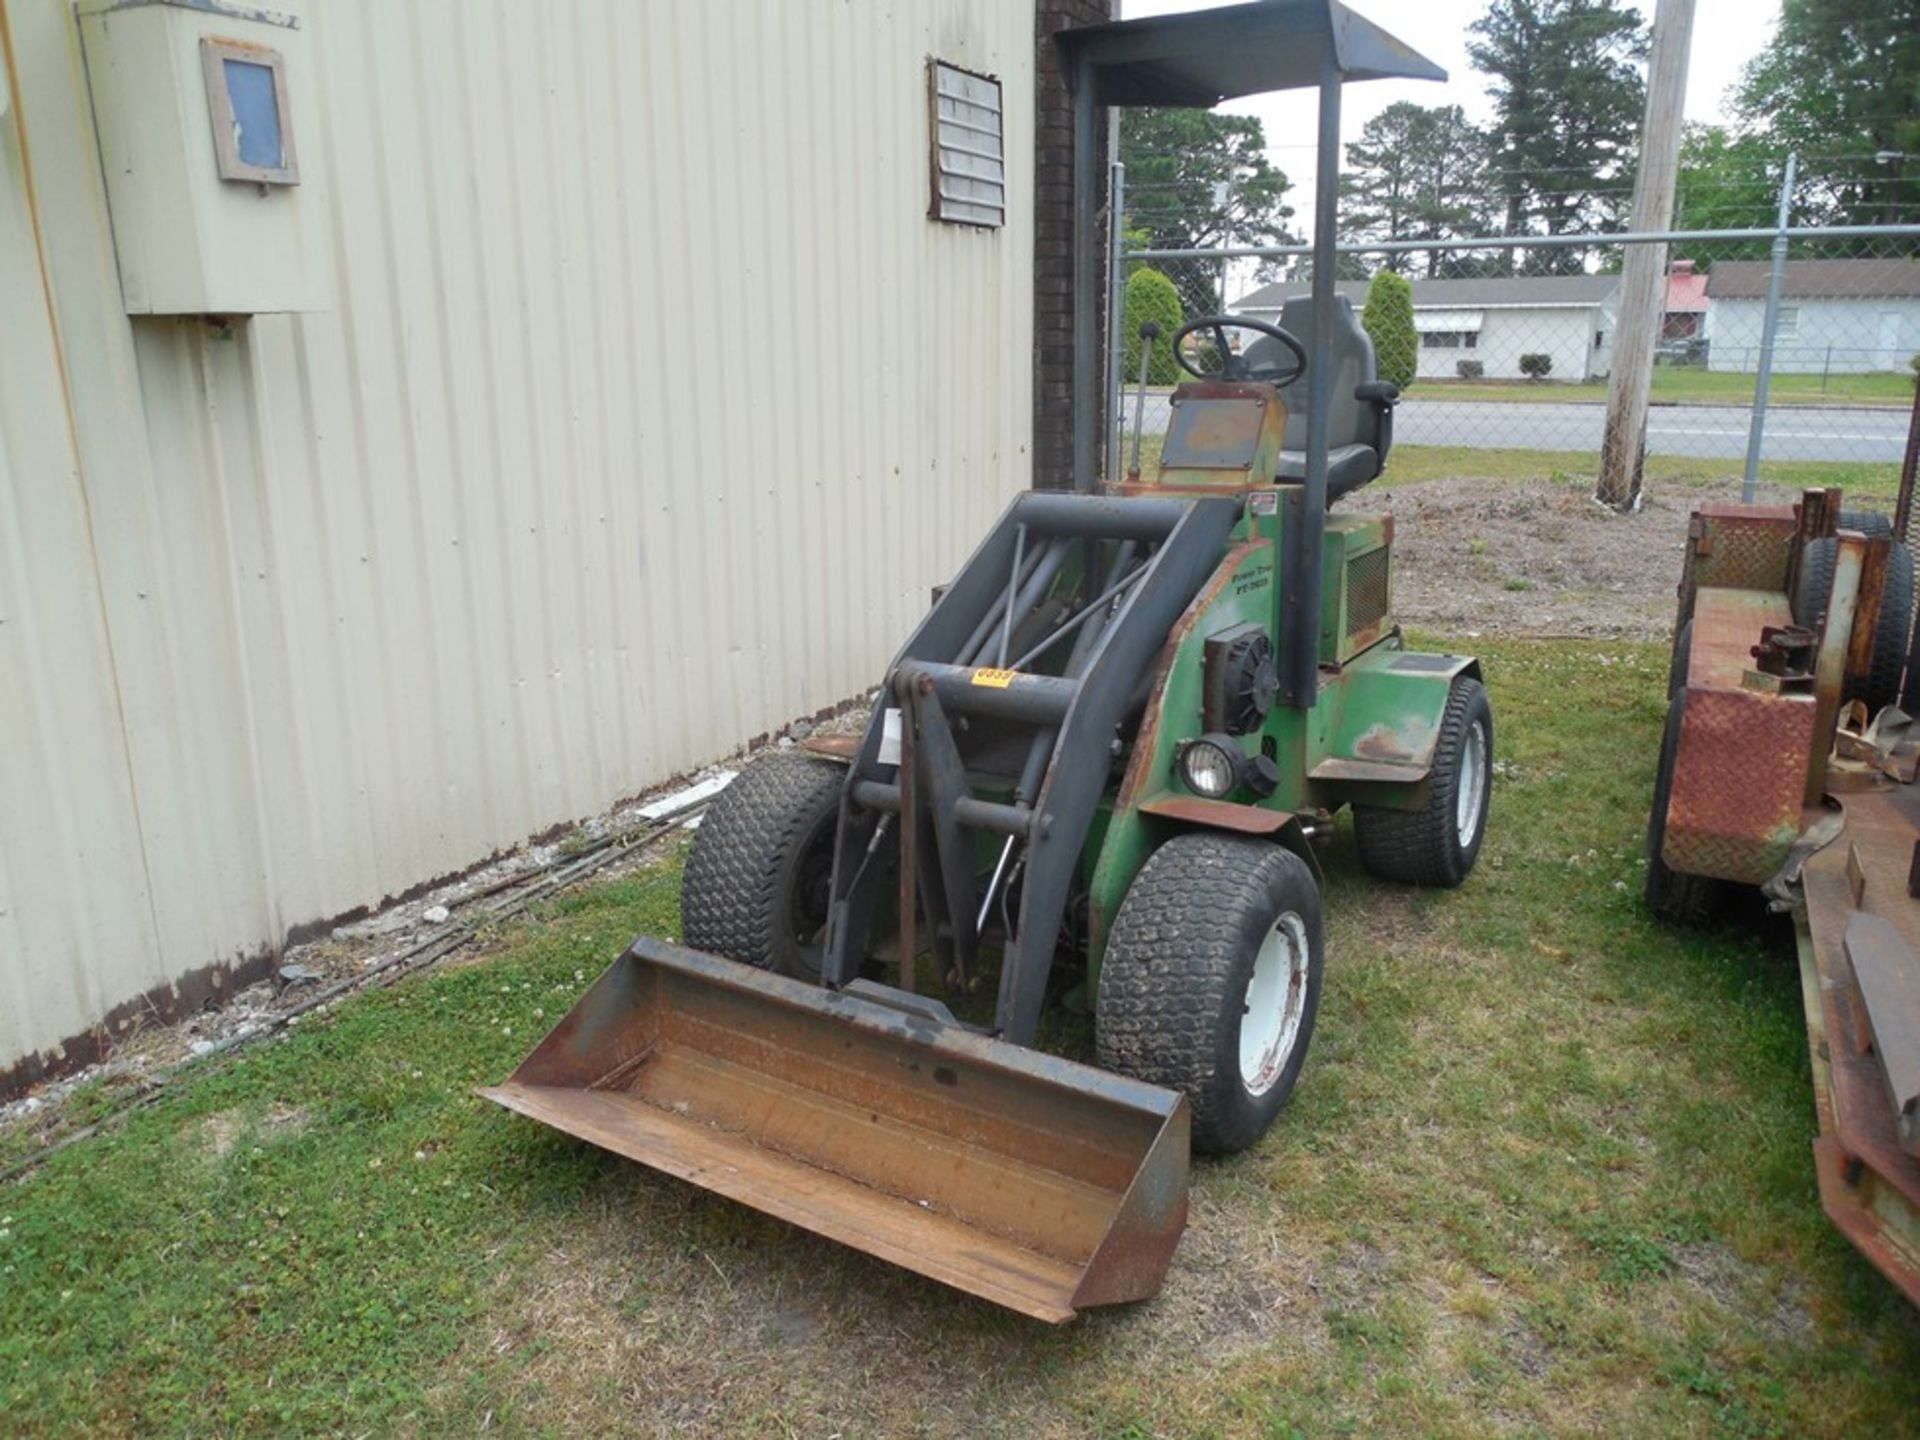 Power Trac PT-2425 Mini Skid Steer ser# 18928 with trailer, power rake, tree spade, front bucket, - Image 2 of 13